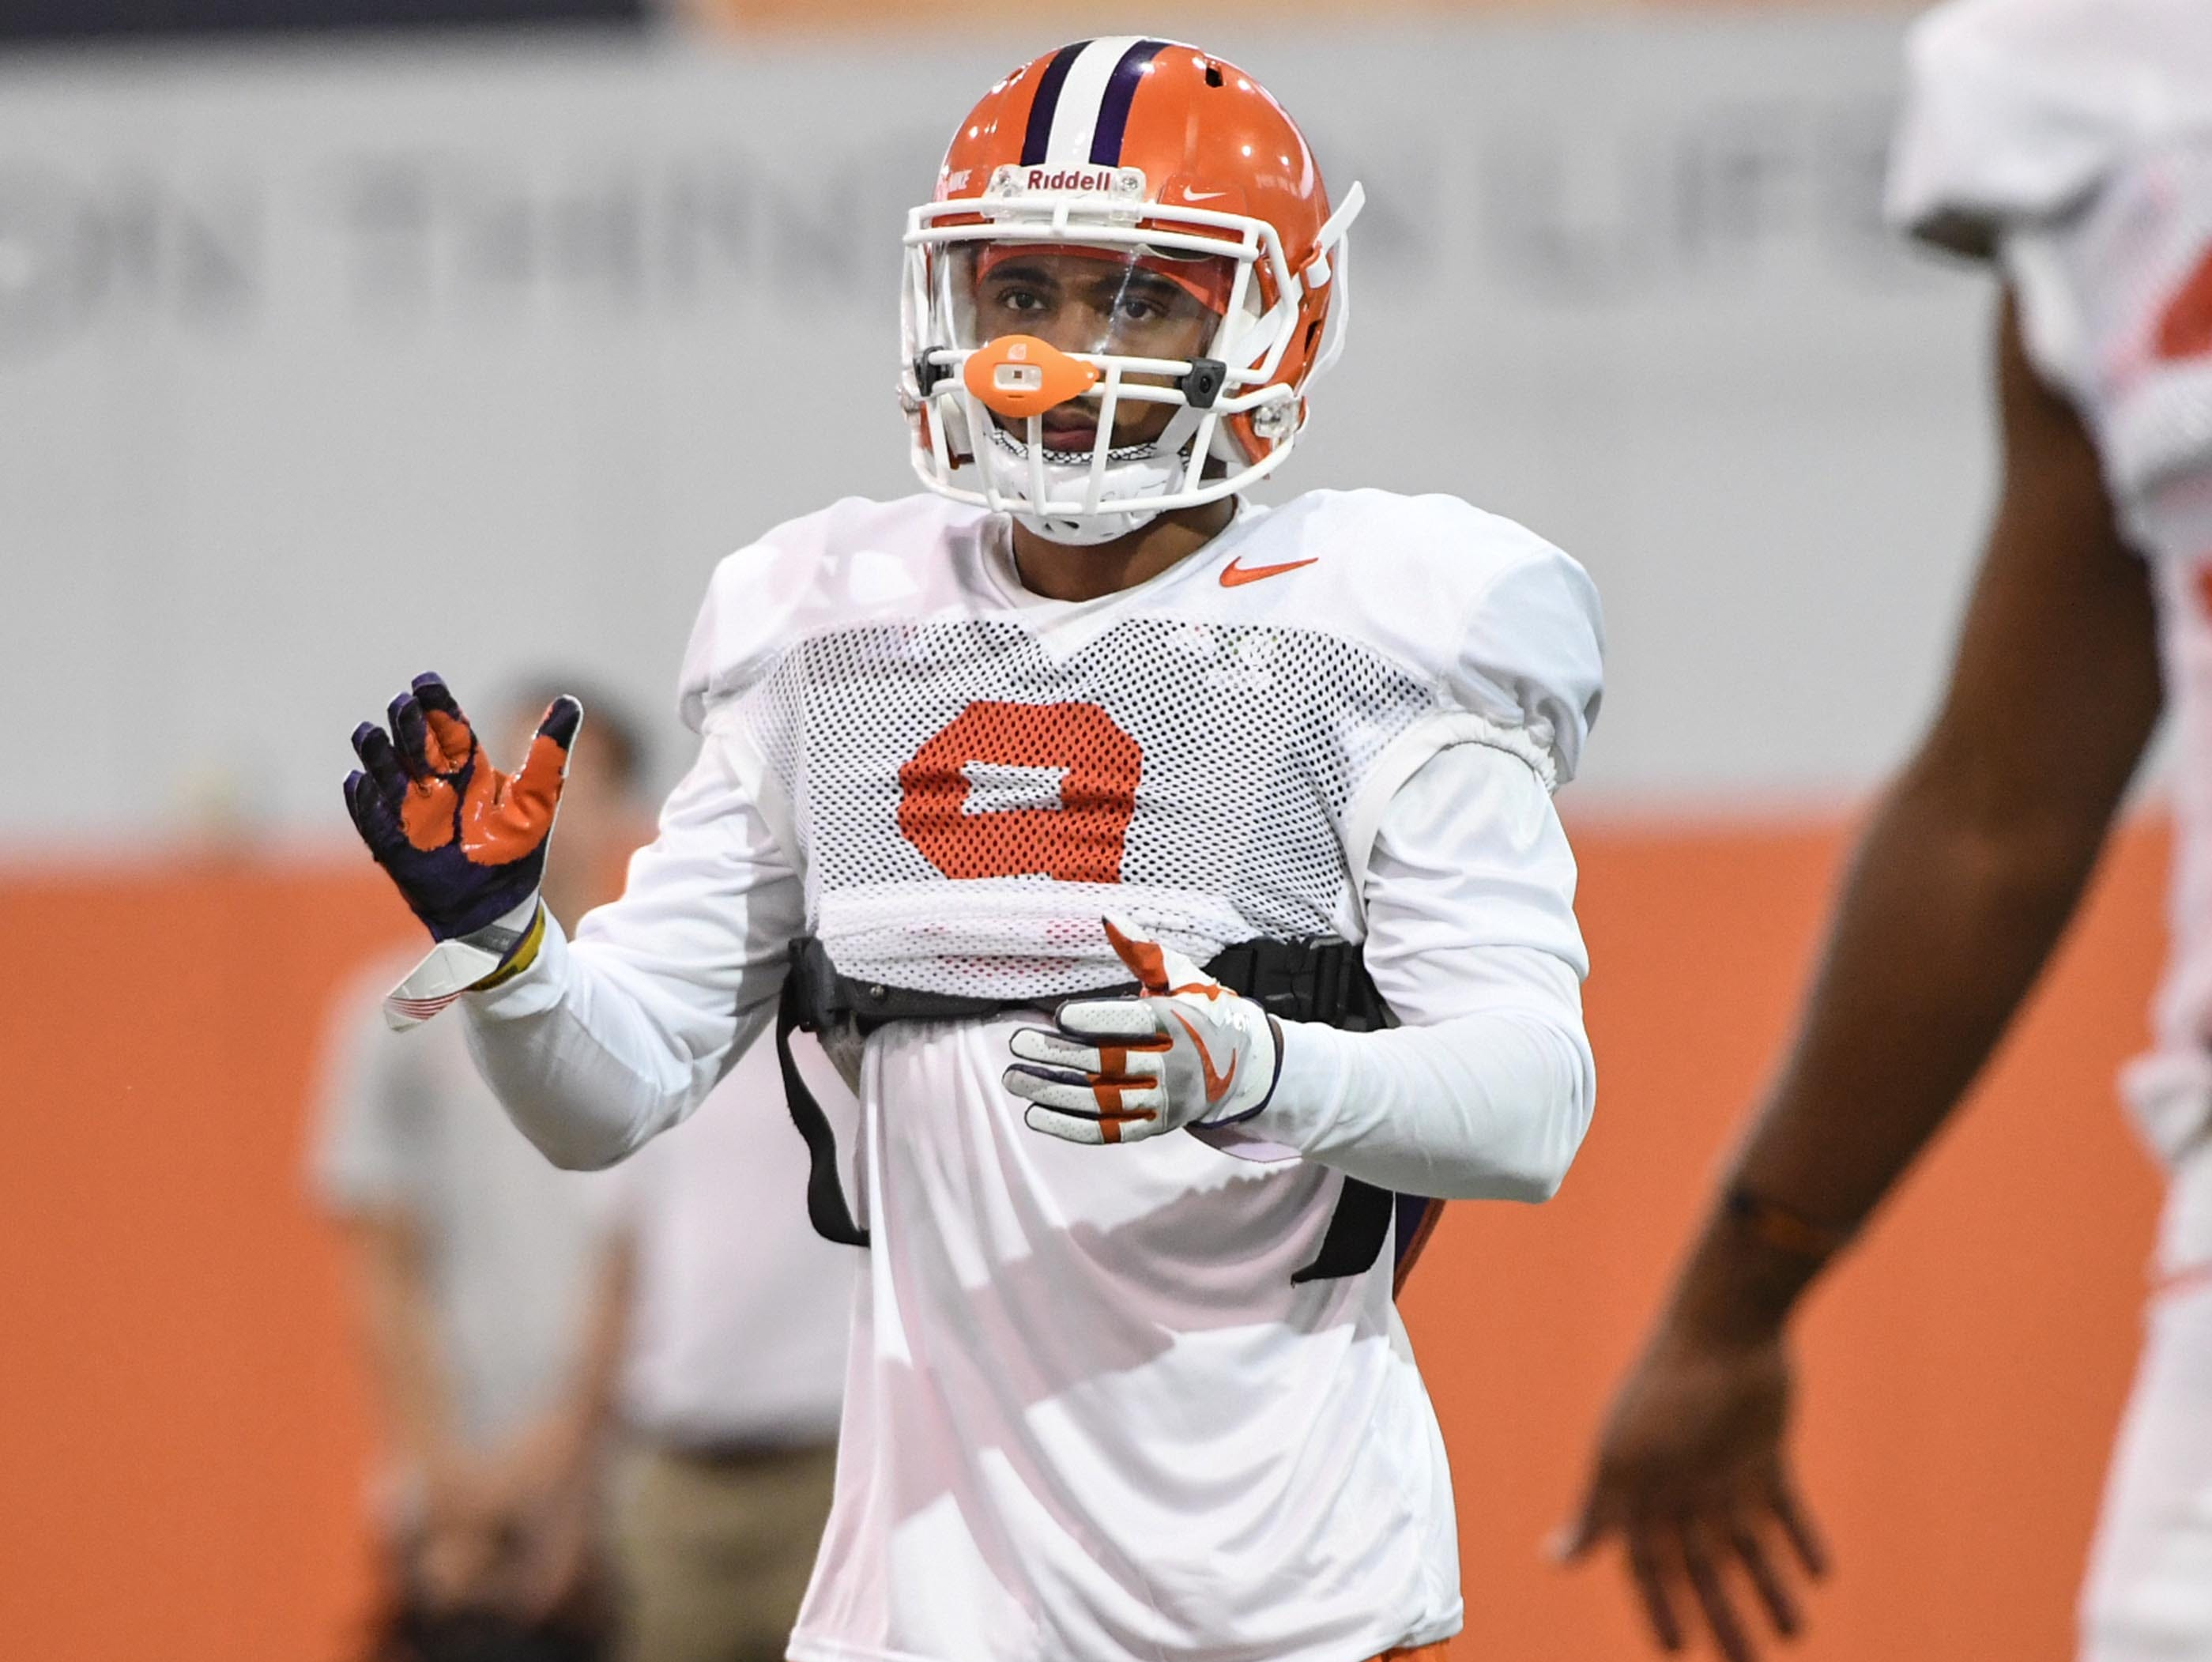 Cornerback Brian Dawkins Jr. (9) during fall practice in Clemson on Wednesday.